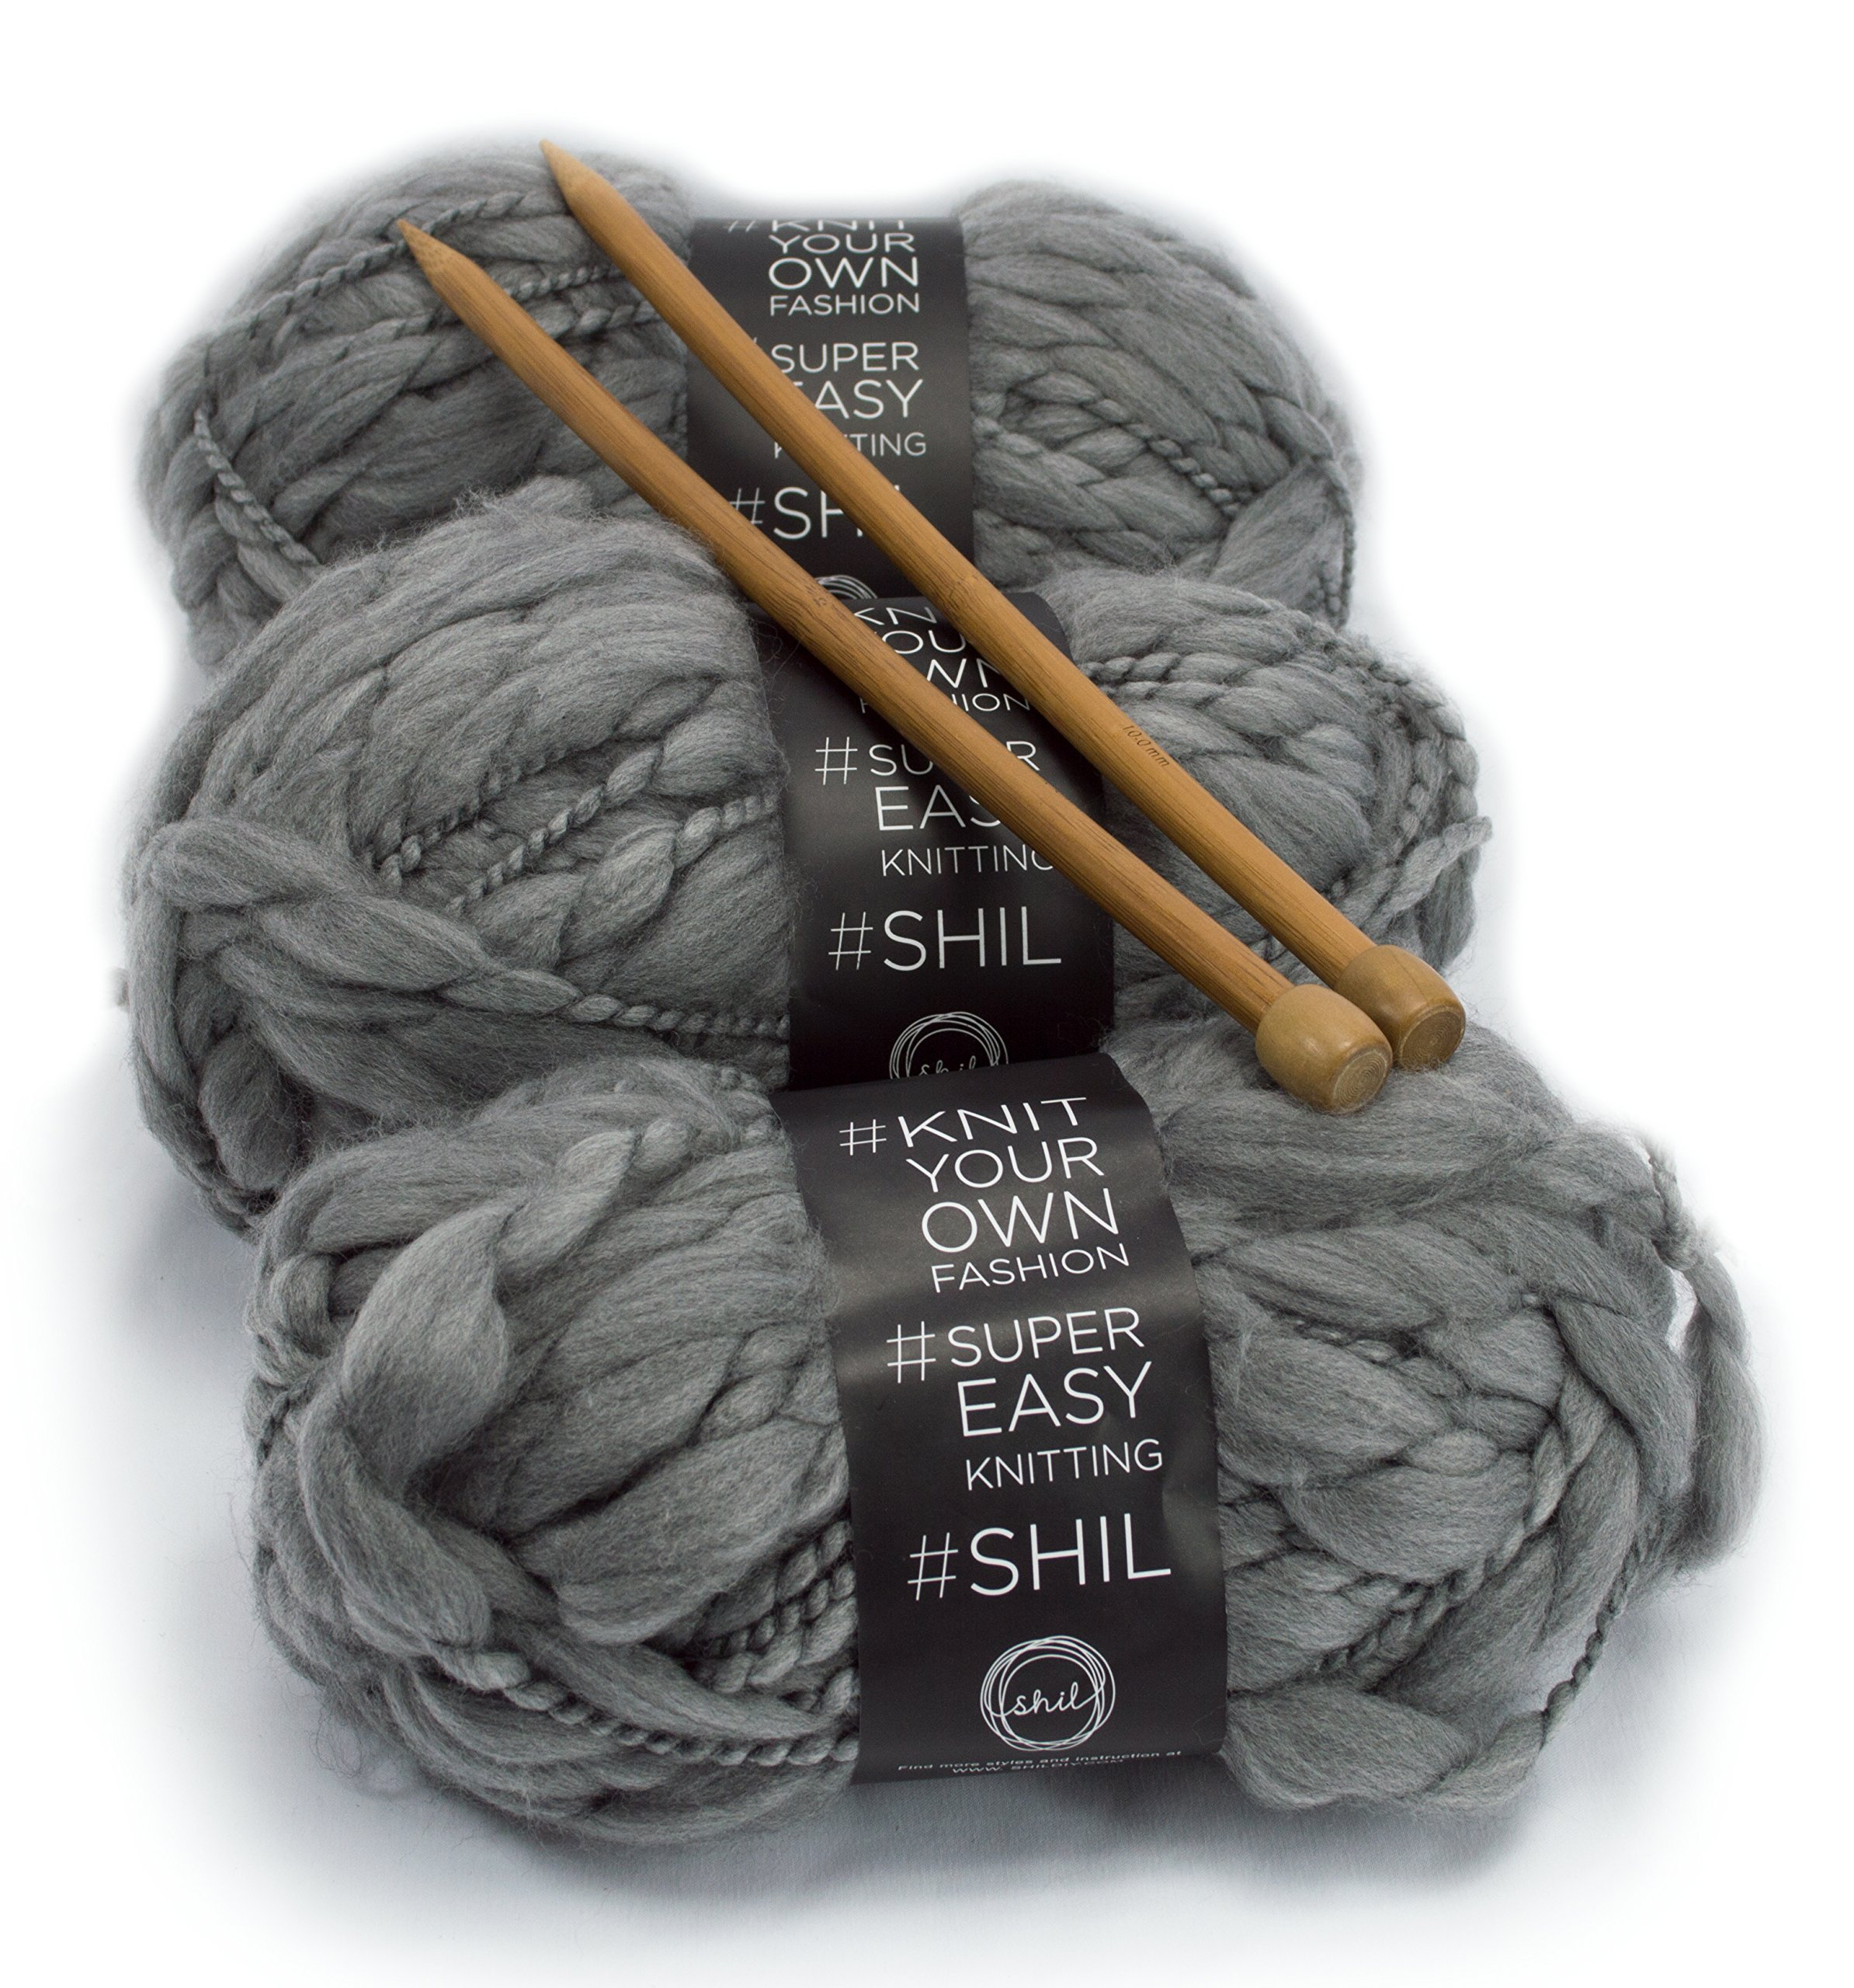 DIY Knitting Blanket Kit Super Soft Thick and Thin Bulky Yarn US 15 Needles (Charcoal Grey) by Rising Phoenix Industries (Image #2)